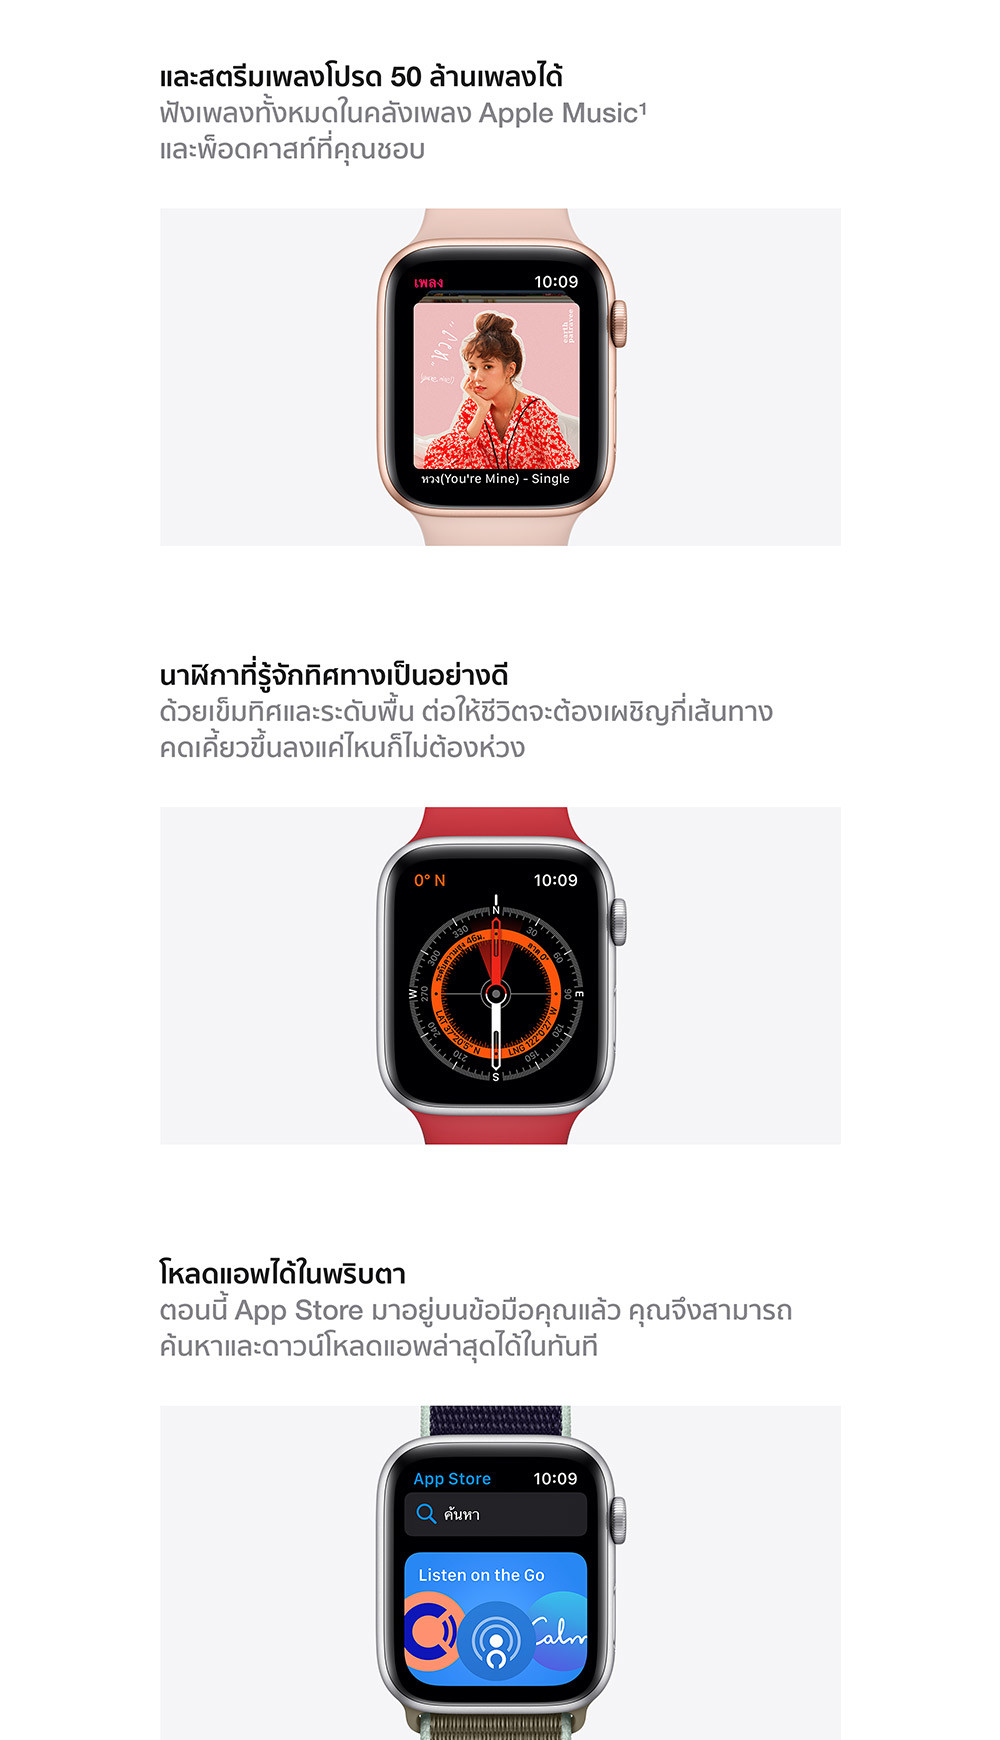 apple-watch-web-product-page_4_2.jpg